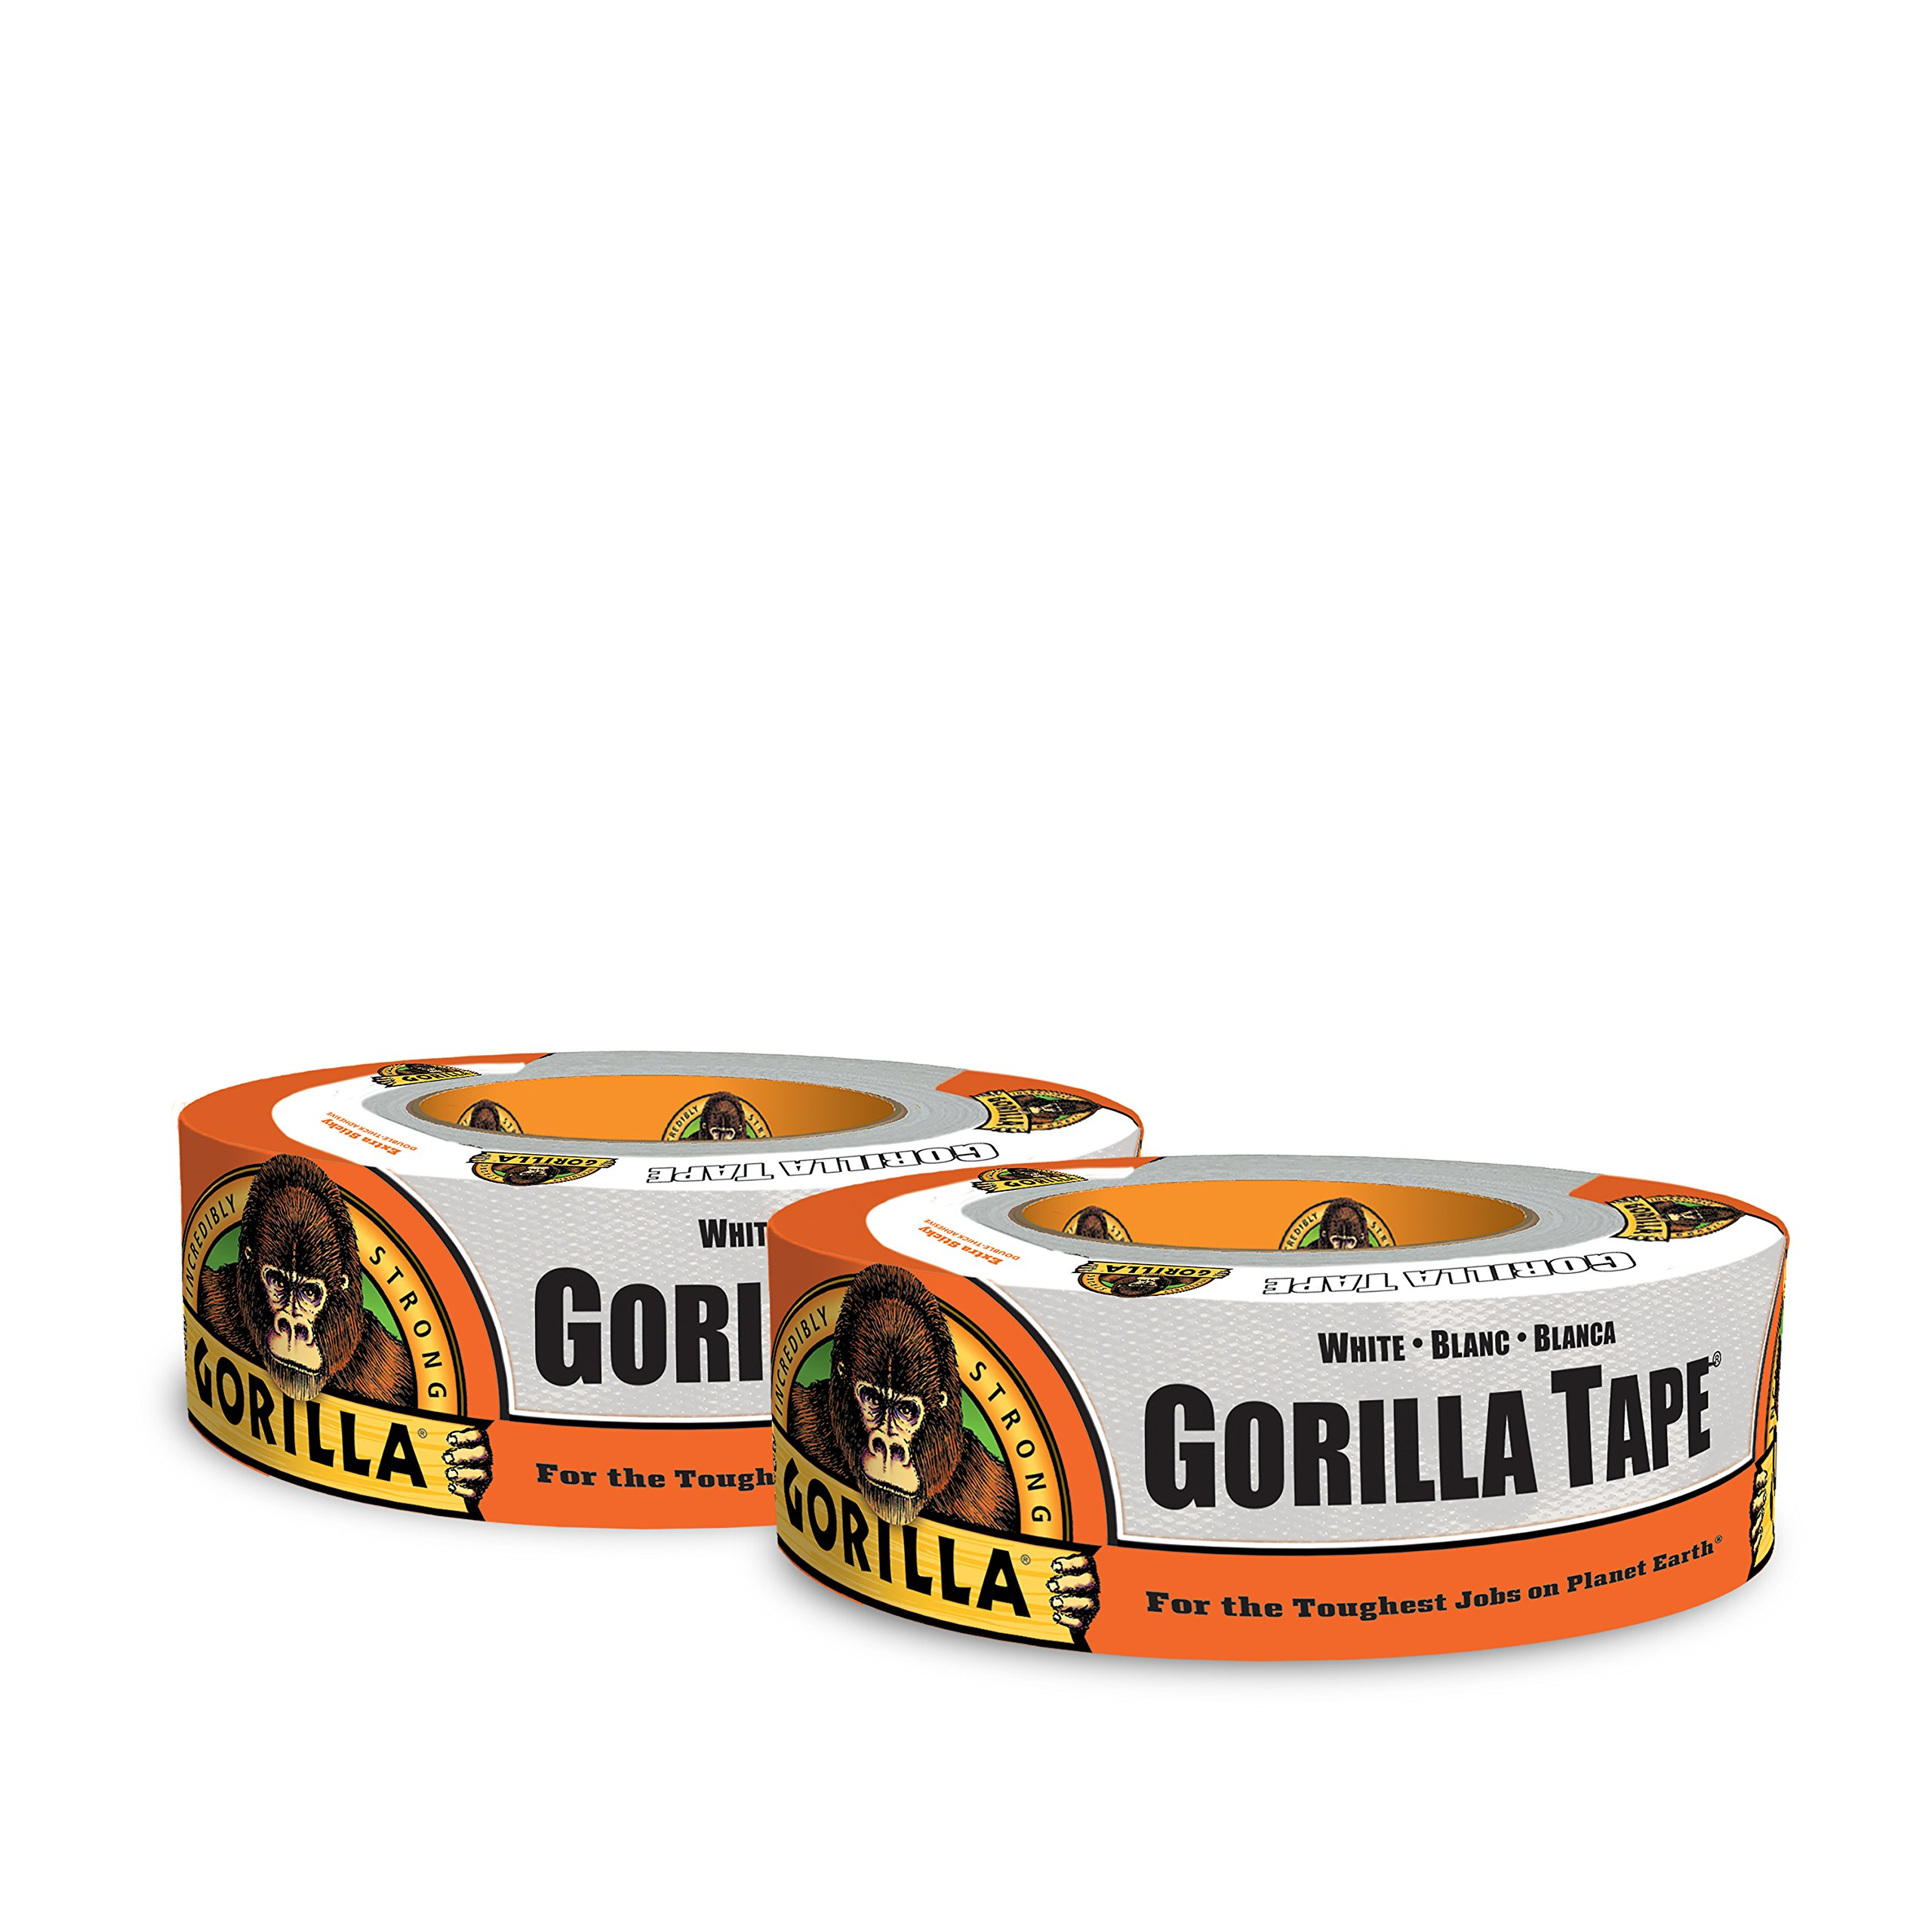 Gorilla 6025001-2 Duct Tape (2 Pack), 1.88'' x 30 yd, White by Gorilla